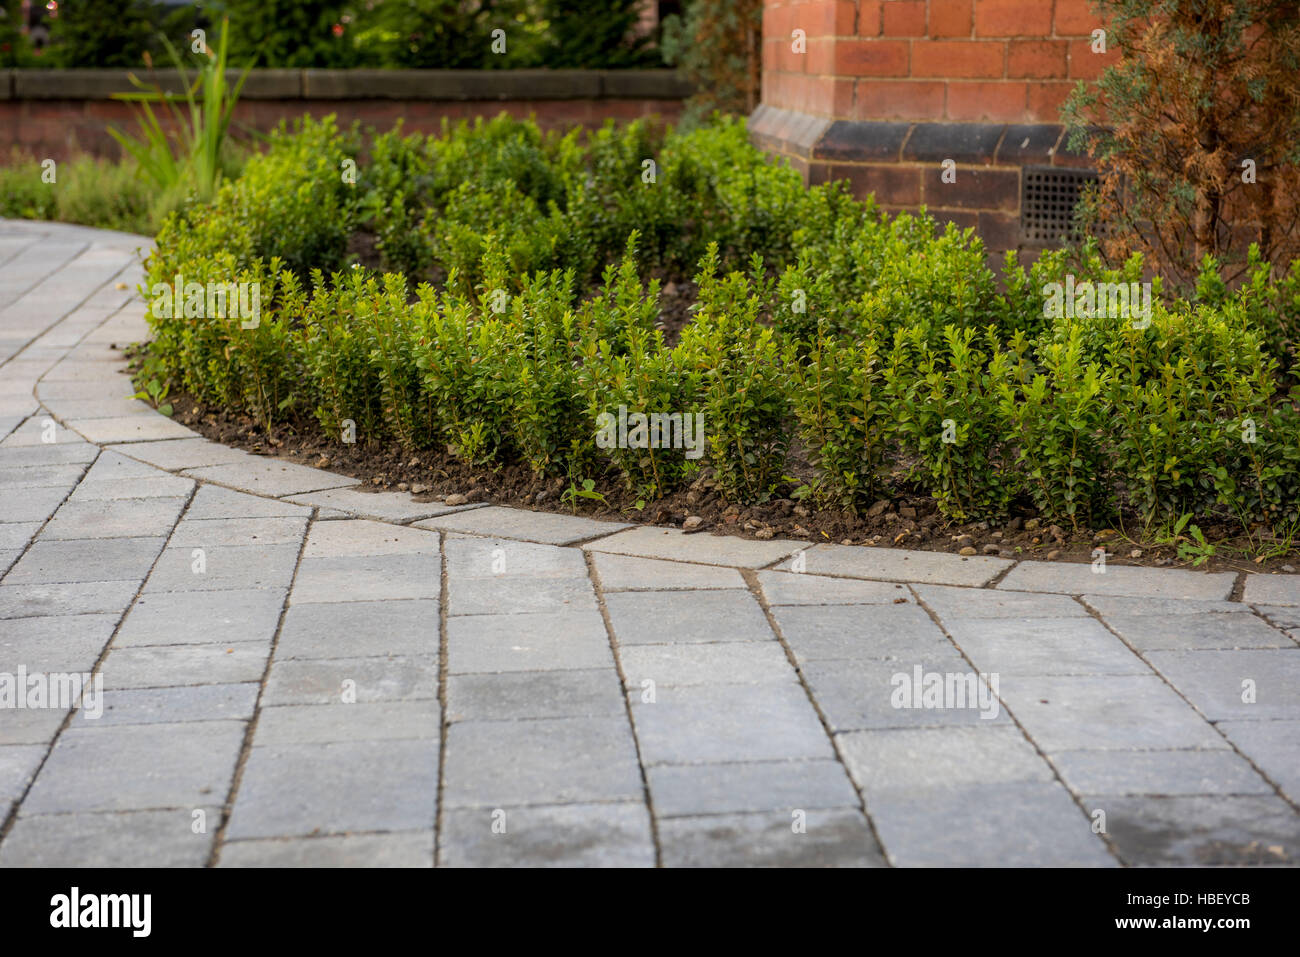 Block pavers driveway edged with young box hedging plants - Stock Image